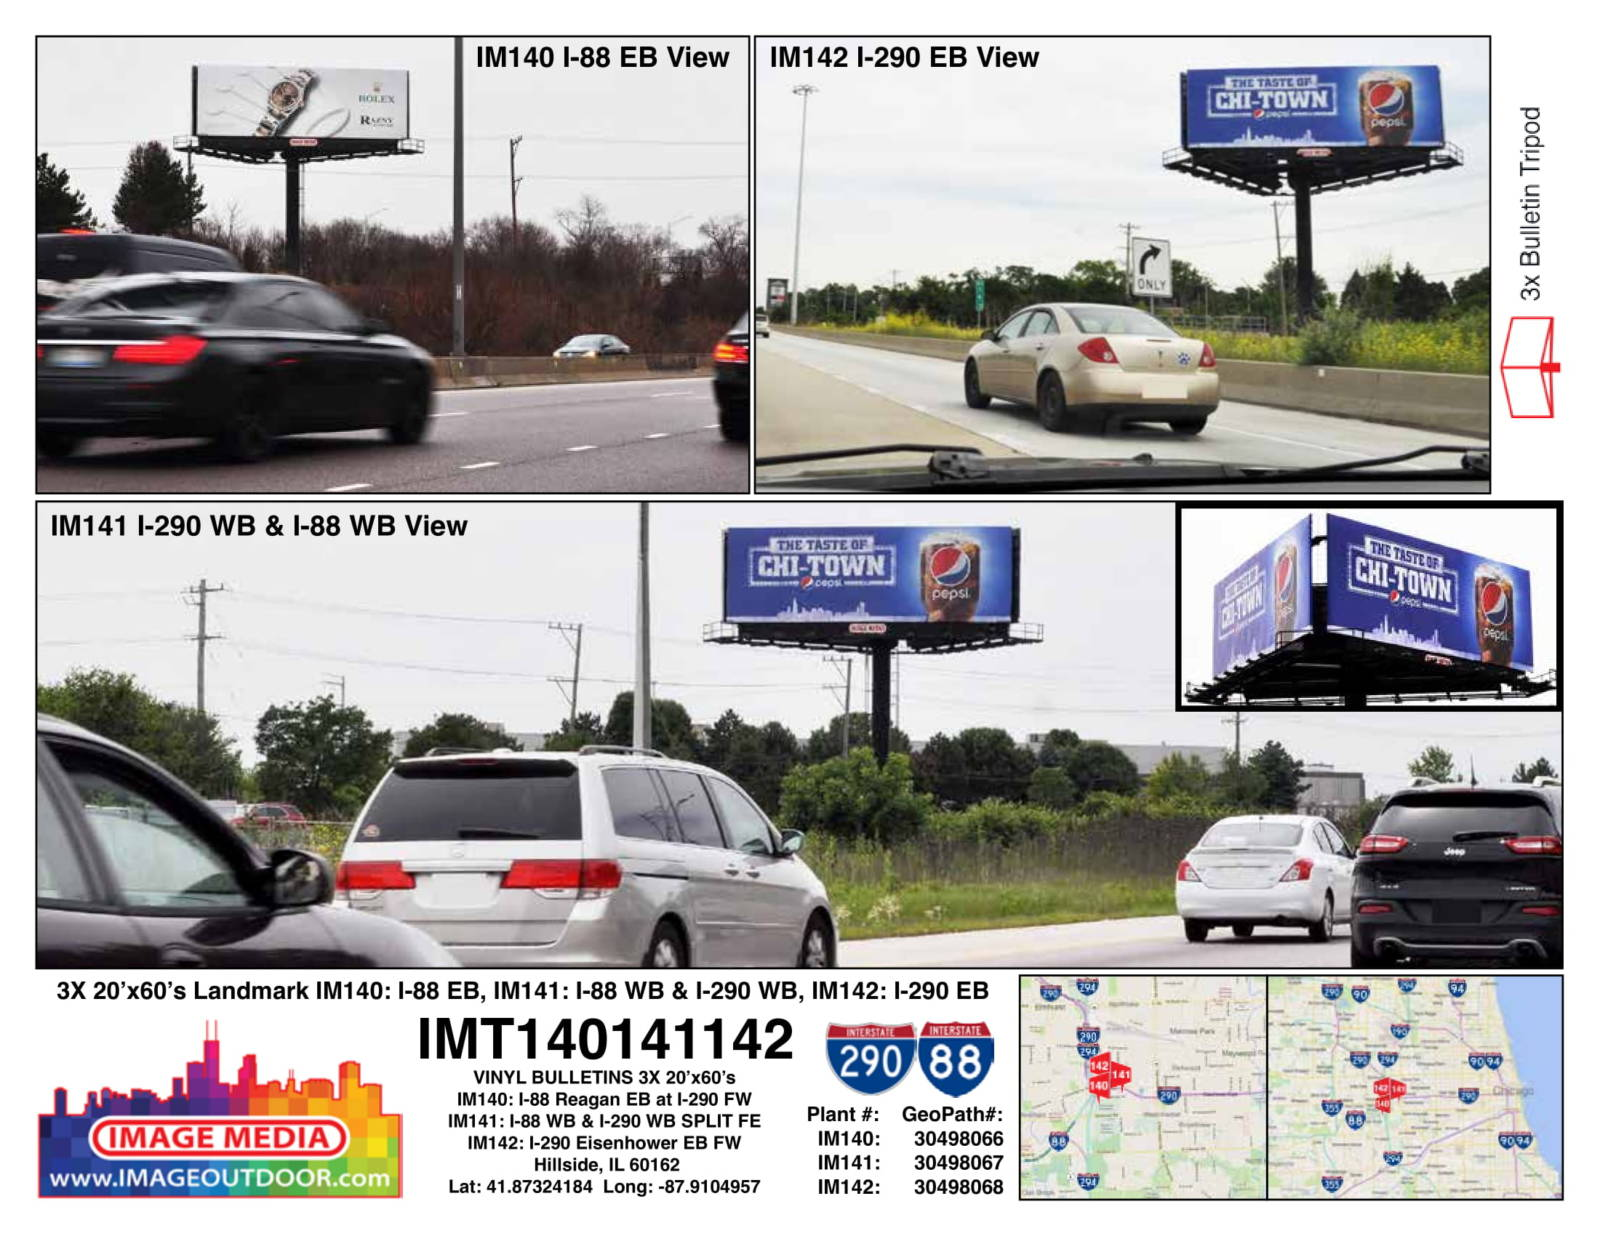 IMT140141142 - bulletin on I-88 east and westbound along with I-290 westbound.